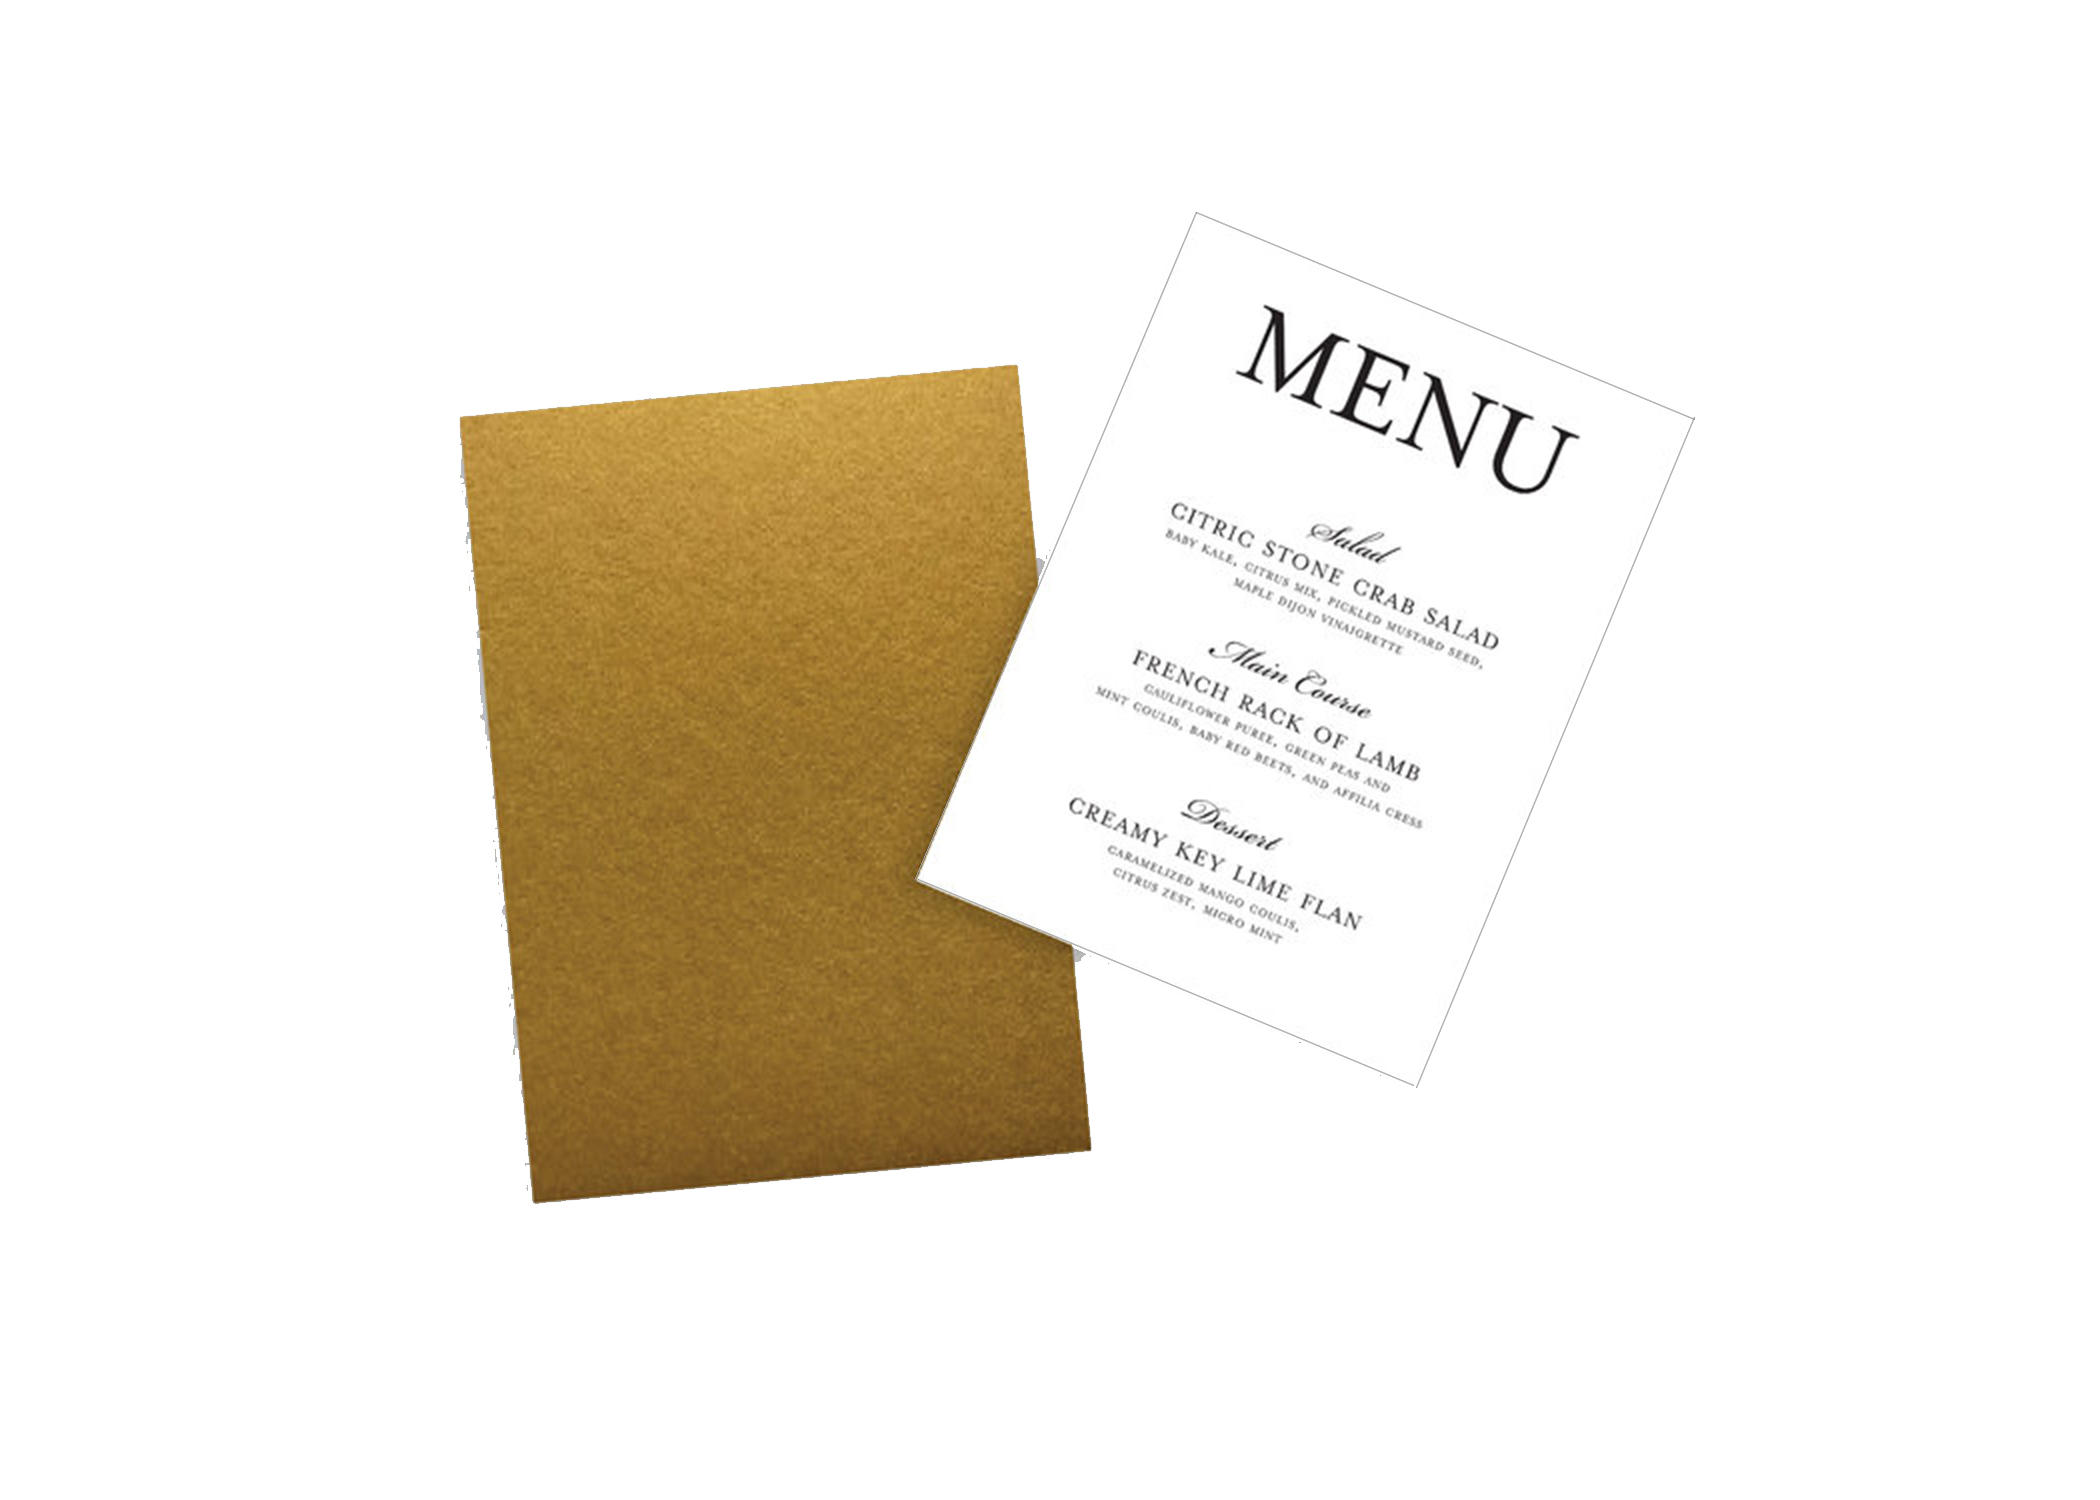 YOU FANCY menus white background.jpg